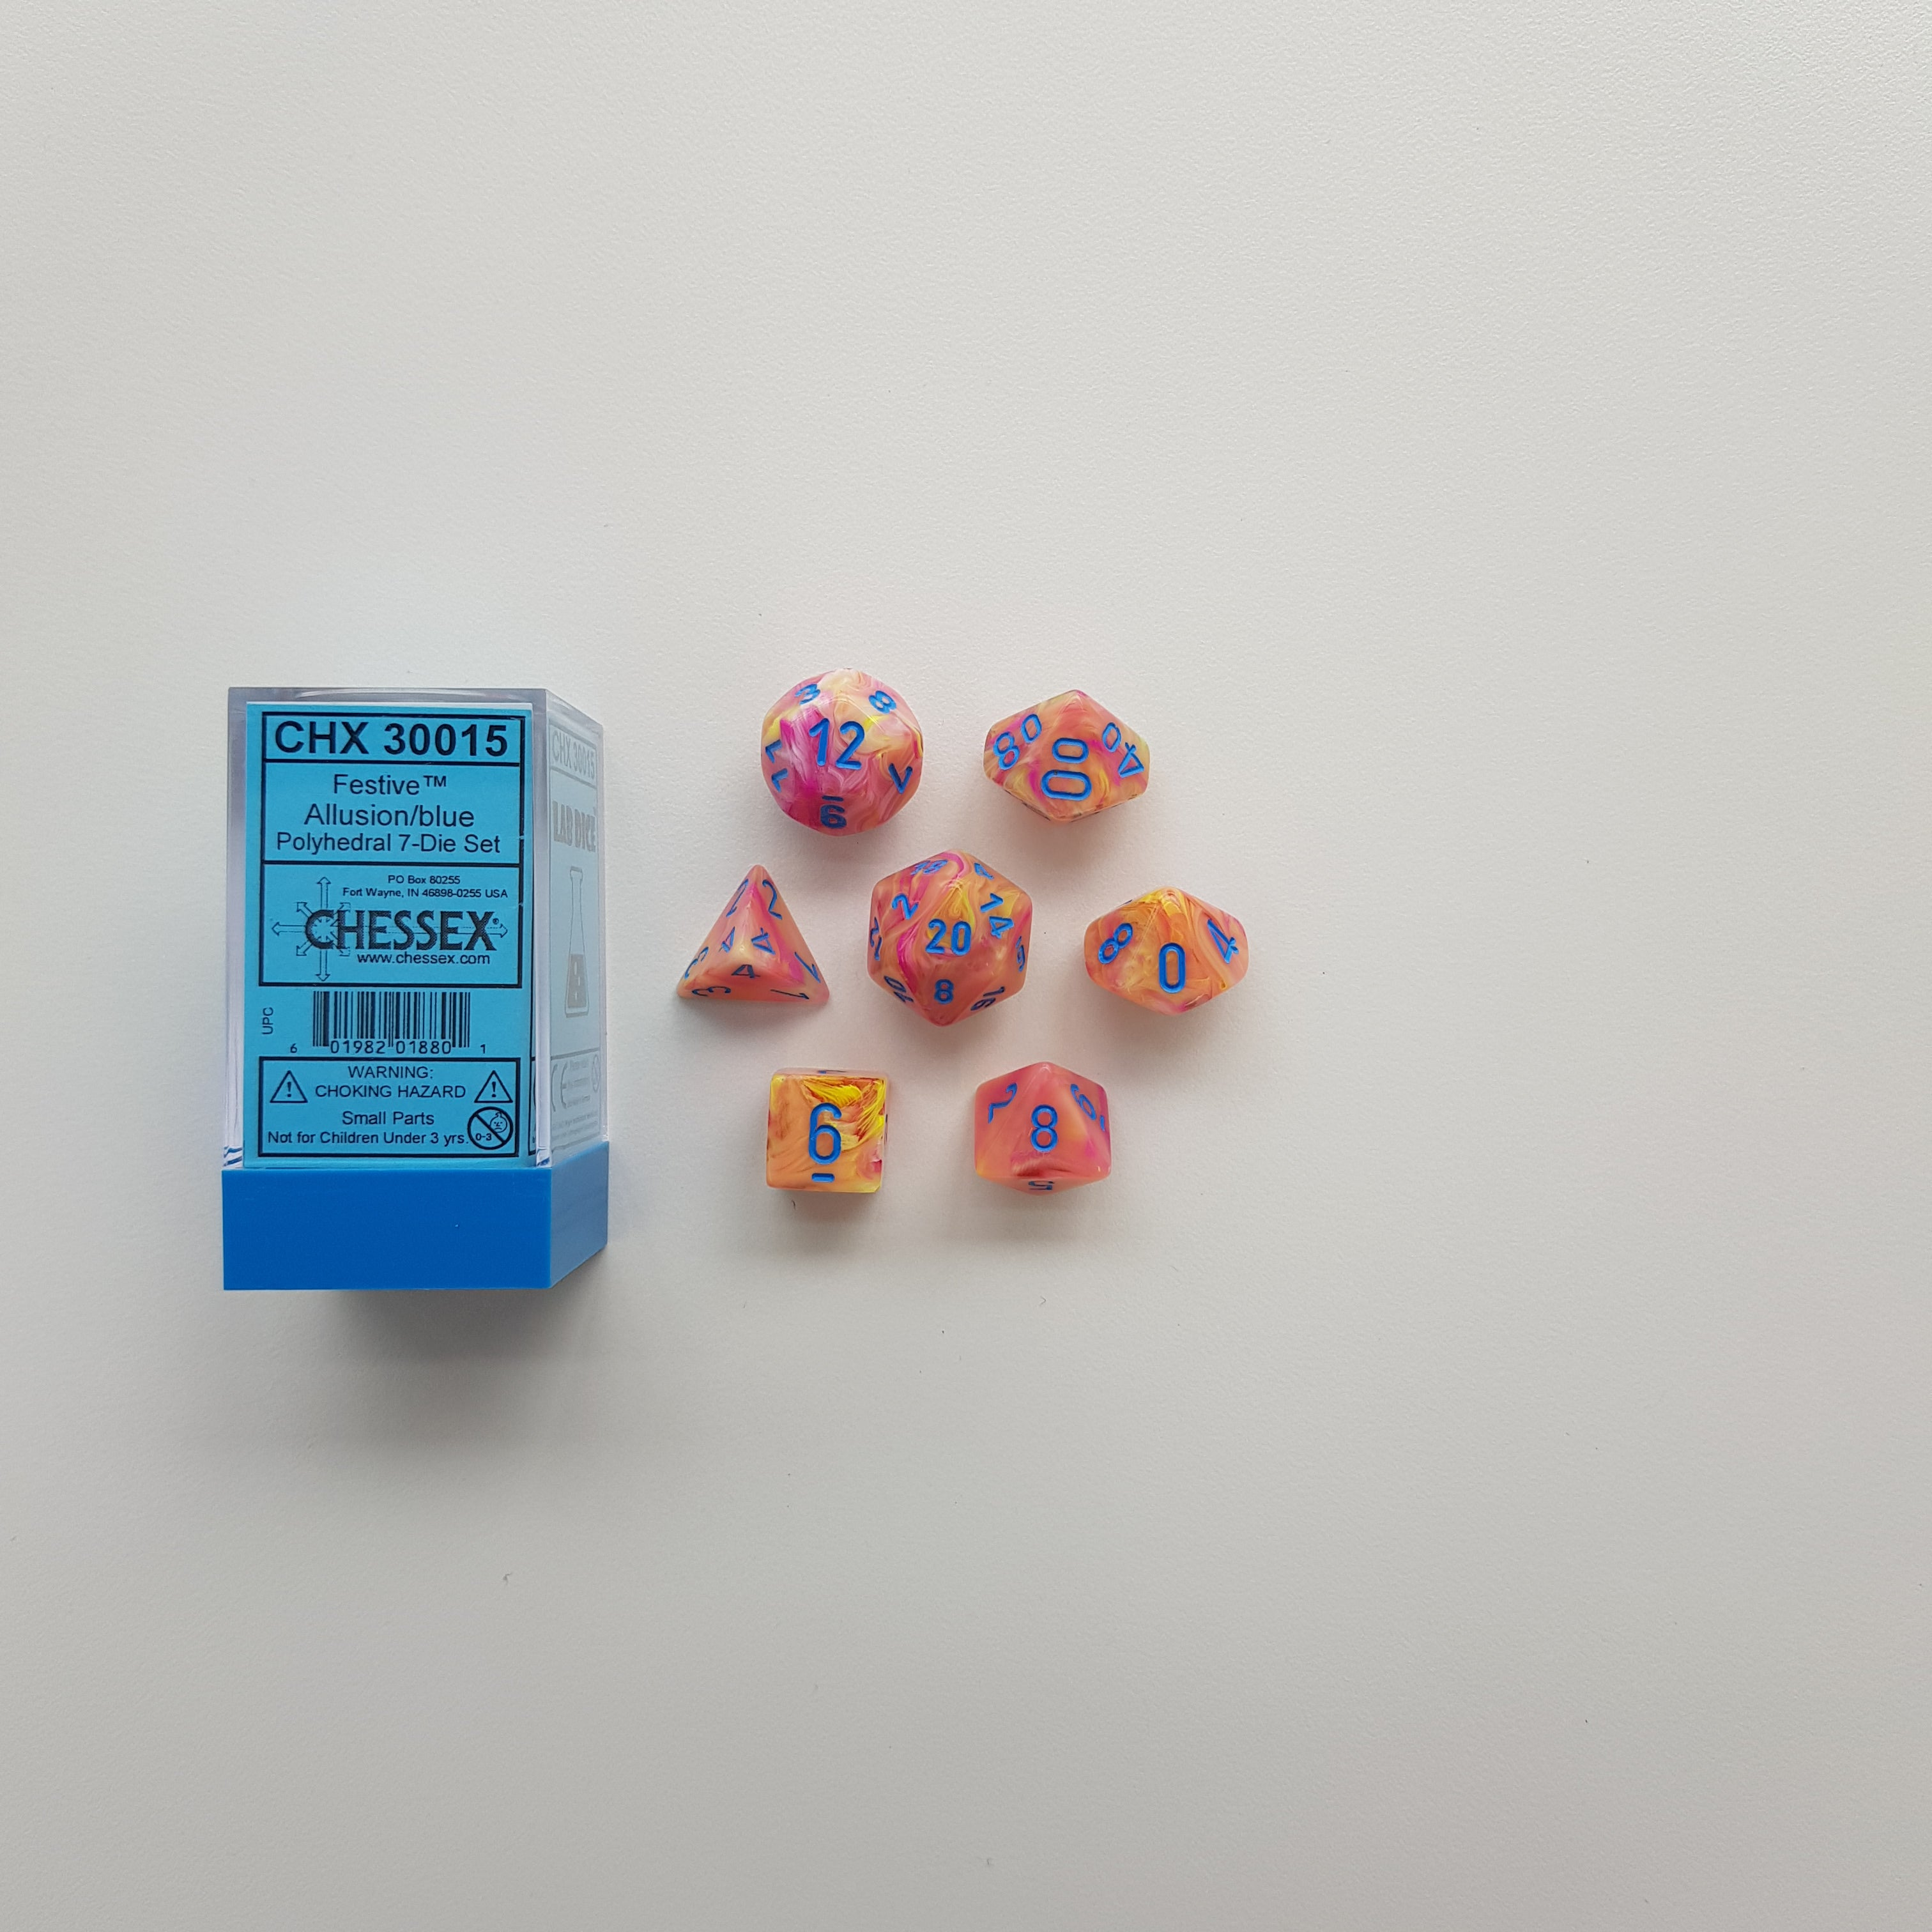 Chessex Allusion/Blue Festive Polyhedral Dice Set (CHX30015) | Sunny Pair'O'Dice